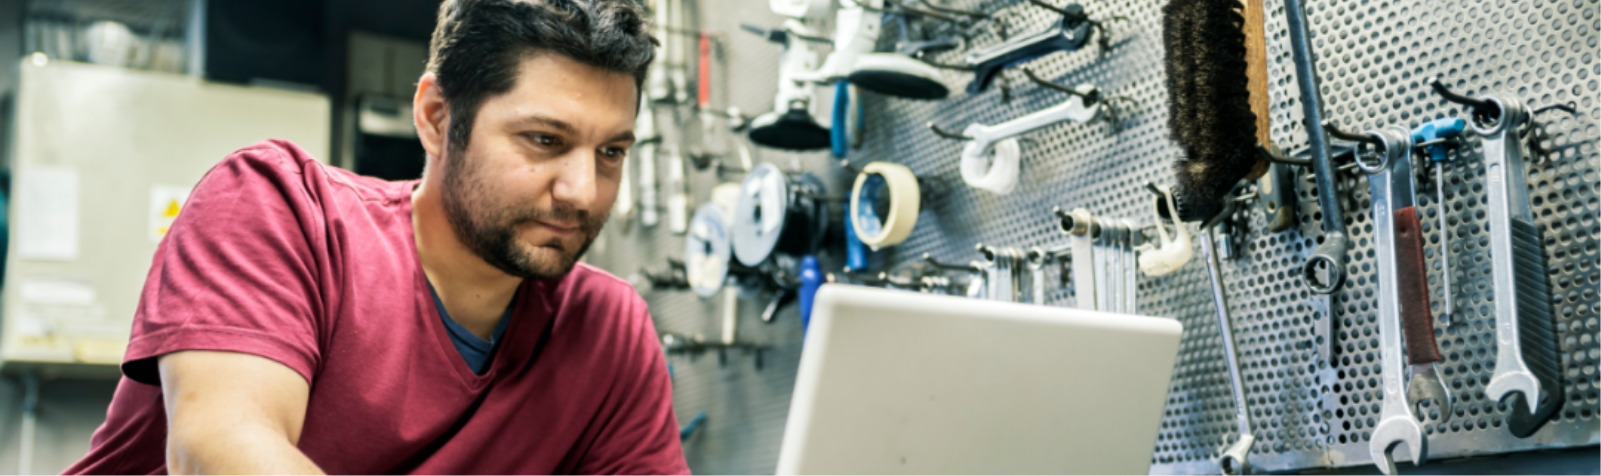 Man on computer surrounded by tools insuring goods